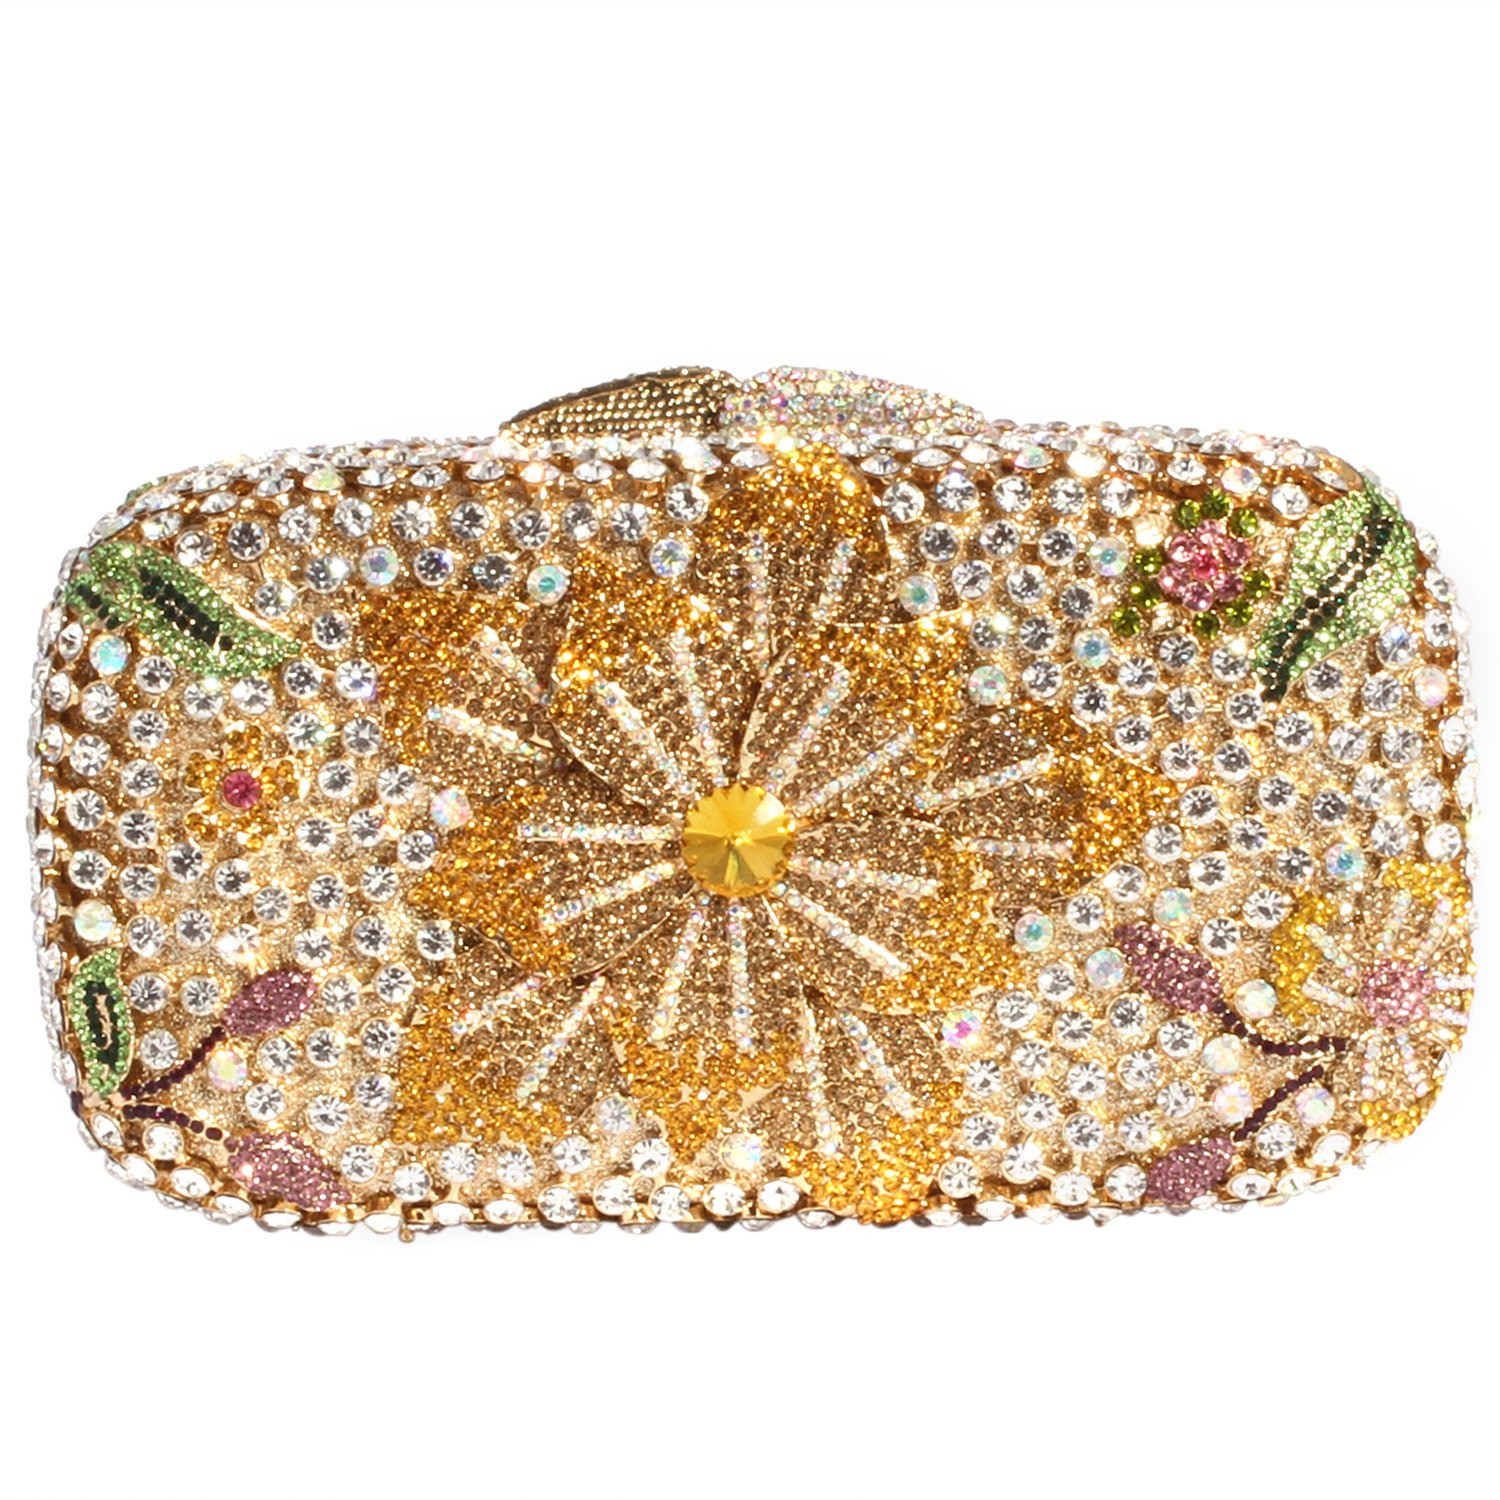 Digabi Bling Flower Pattern Women Crystal Evening Clutch Bags (One Size : 7.14.11.8 IN, yellow flowers crystal - gold plated)